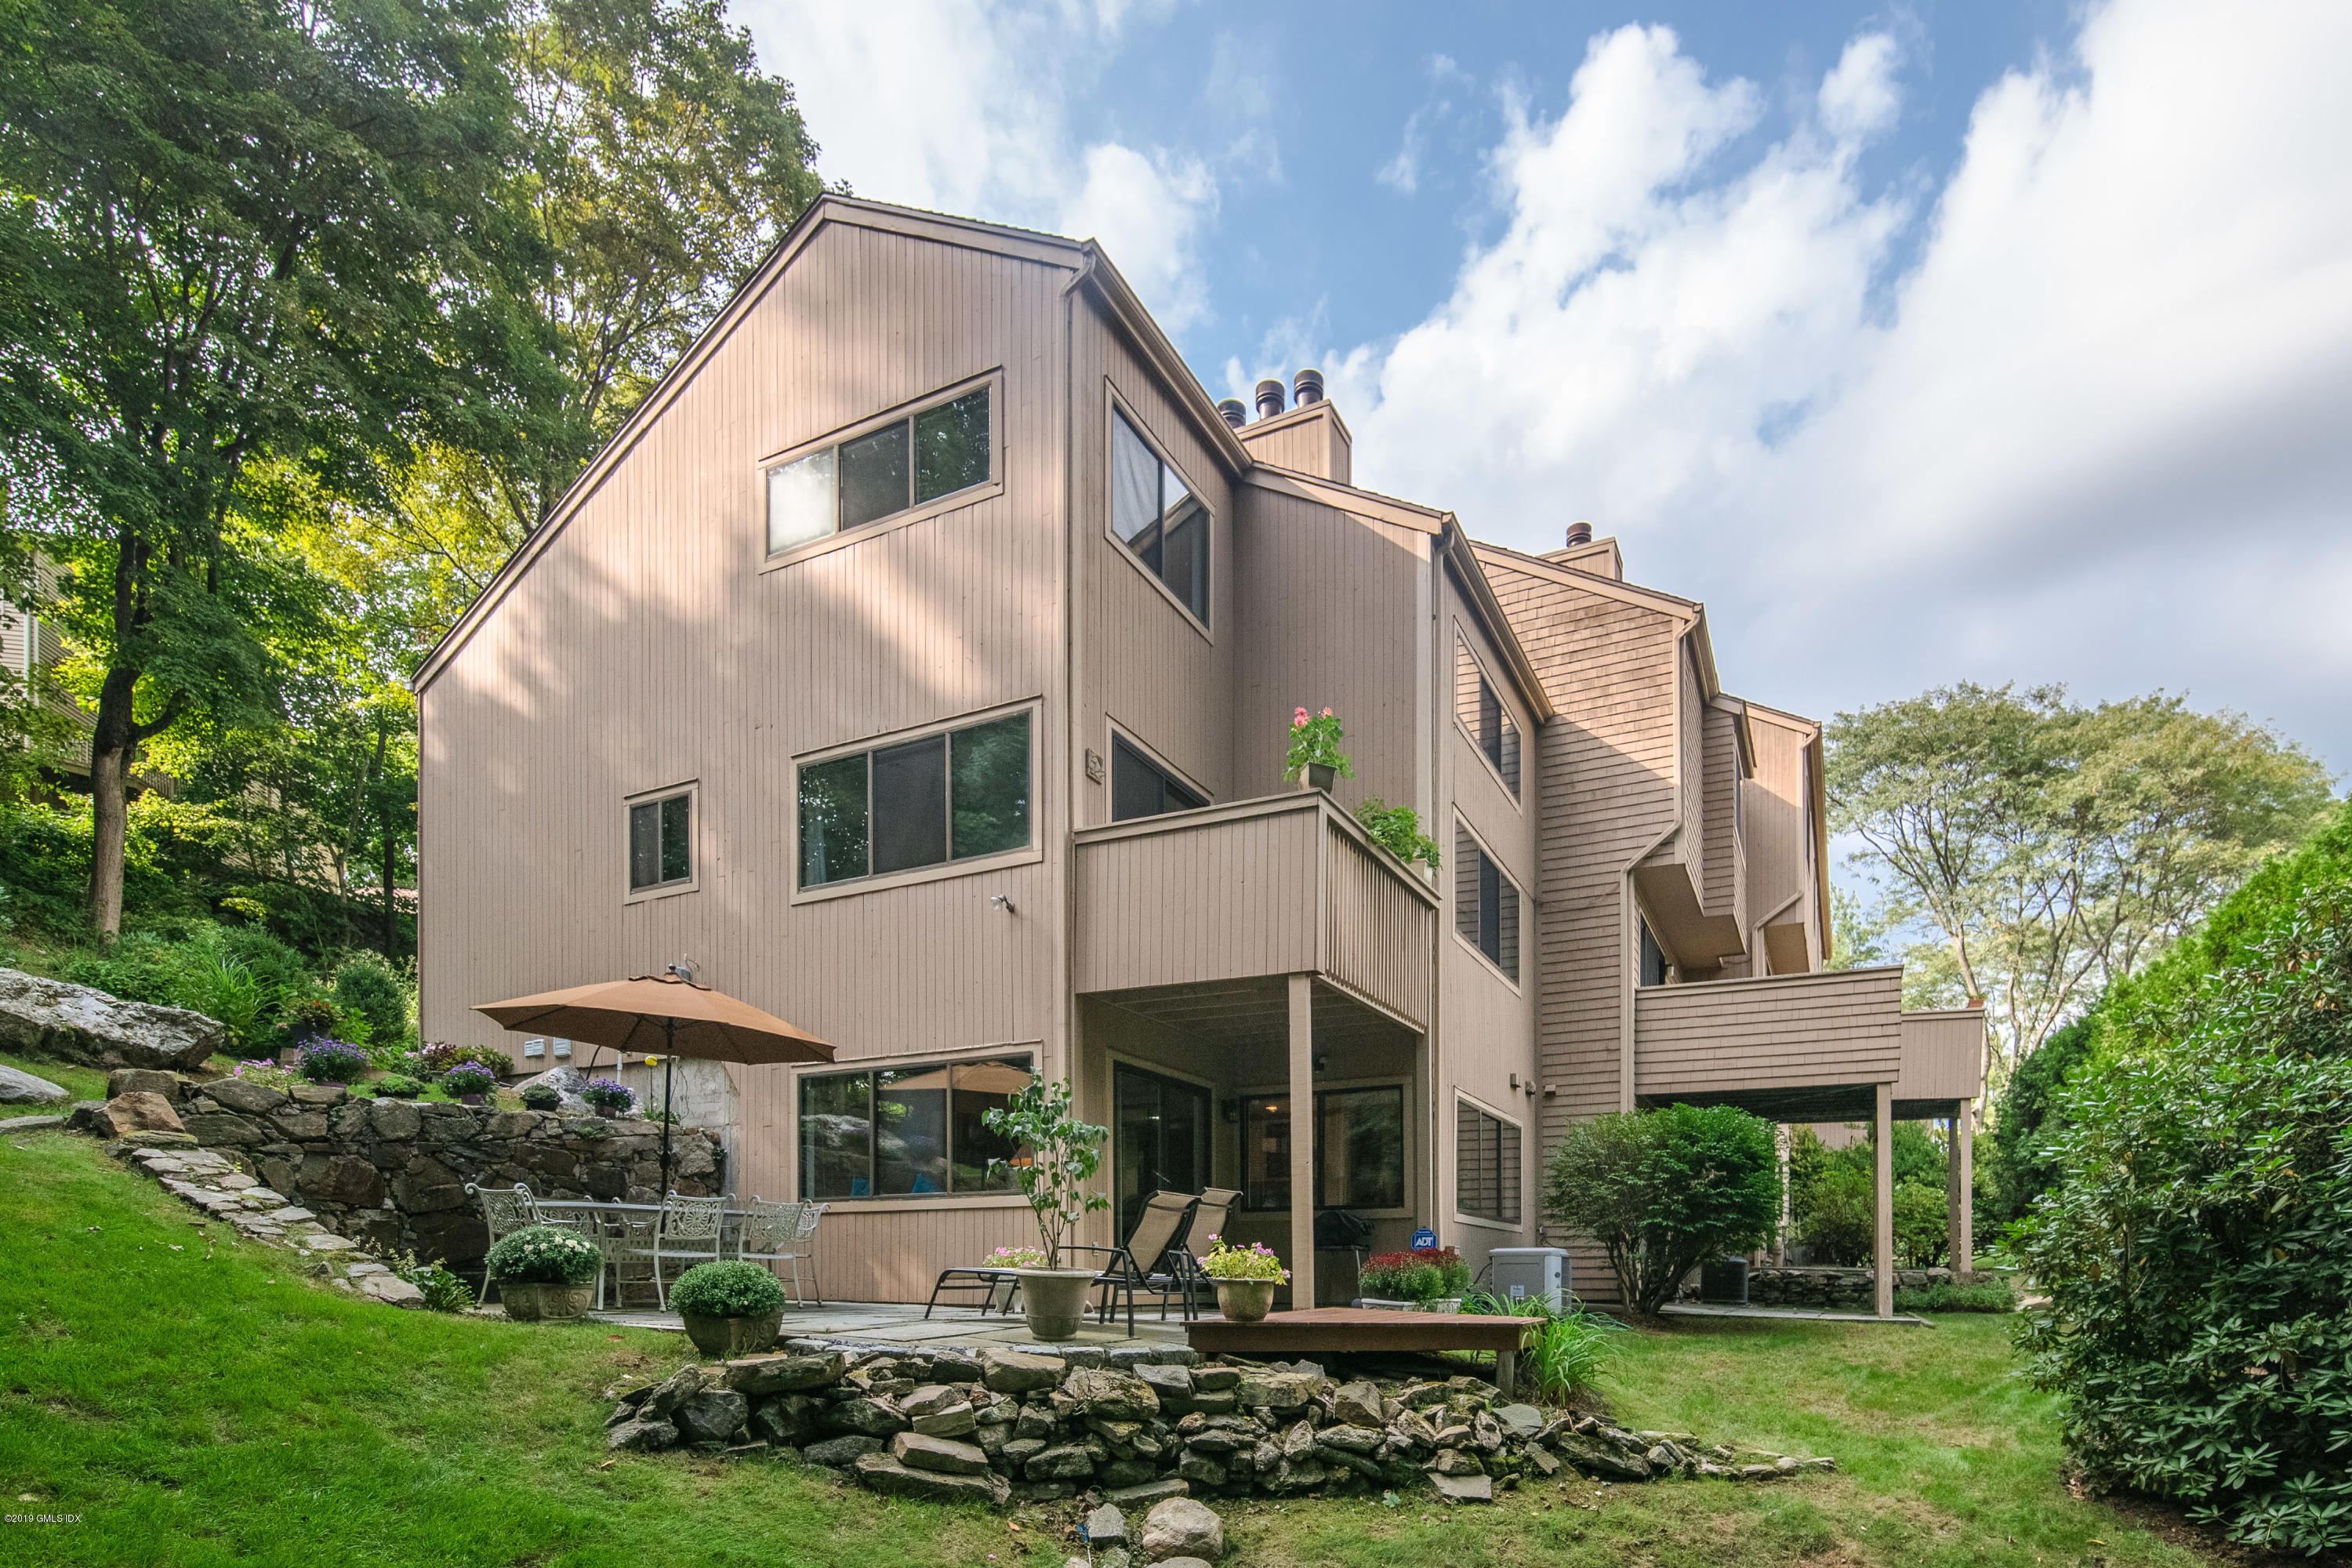 45 River West Greenwich,Connecticut 06831,3 Bedrooms Bedrooms,2 BathroomsBathrooms,Condominium,River West,107820